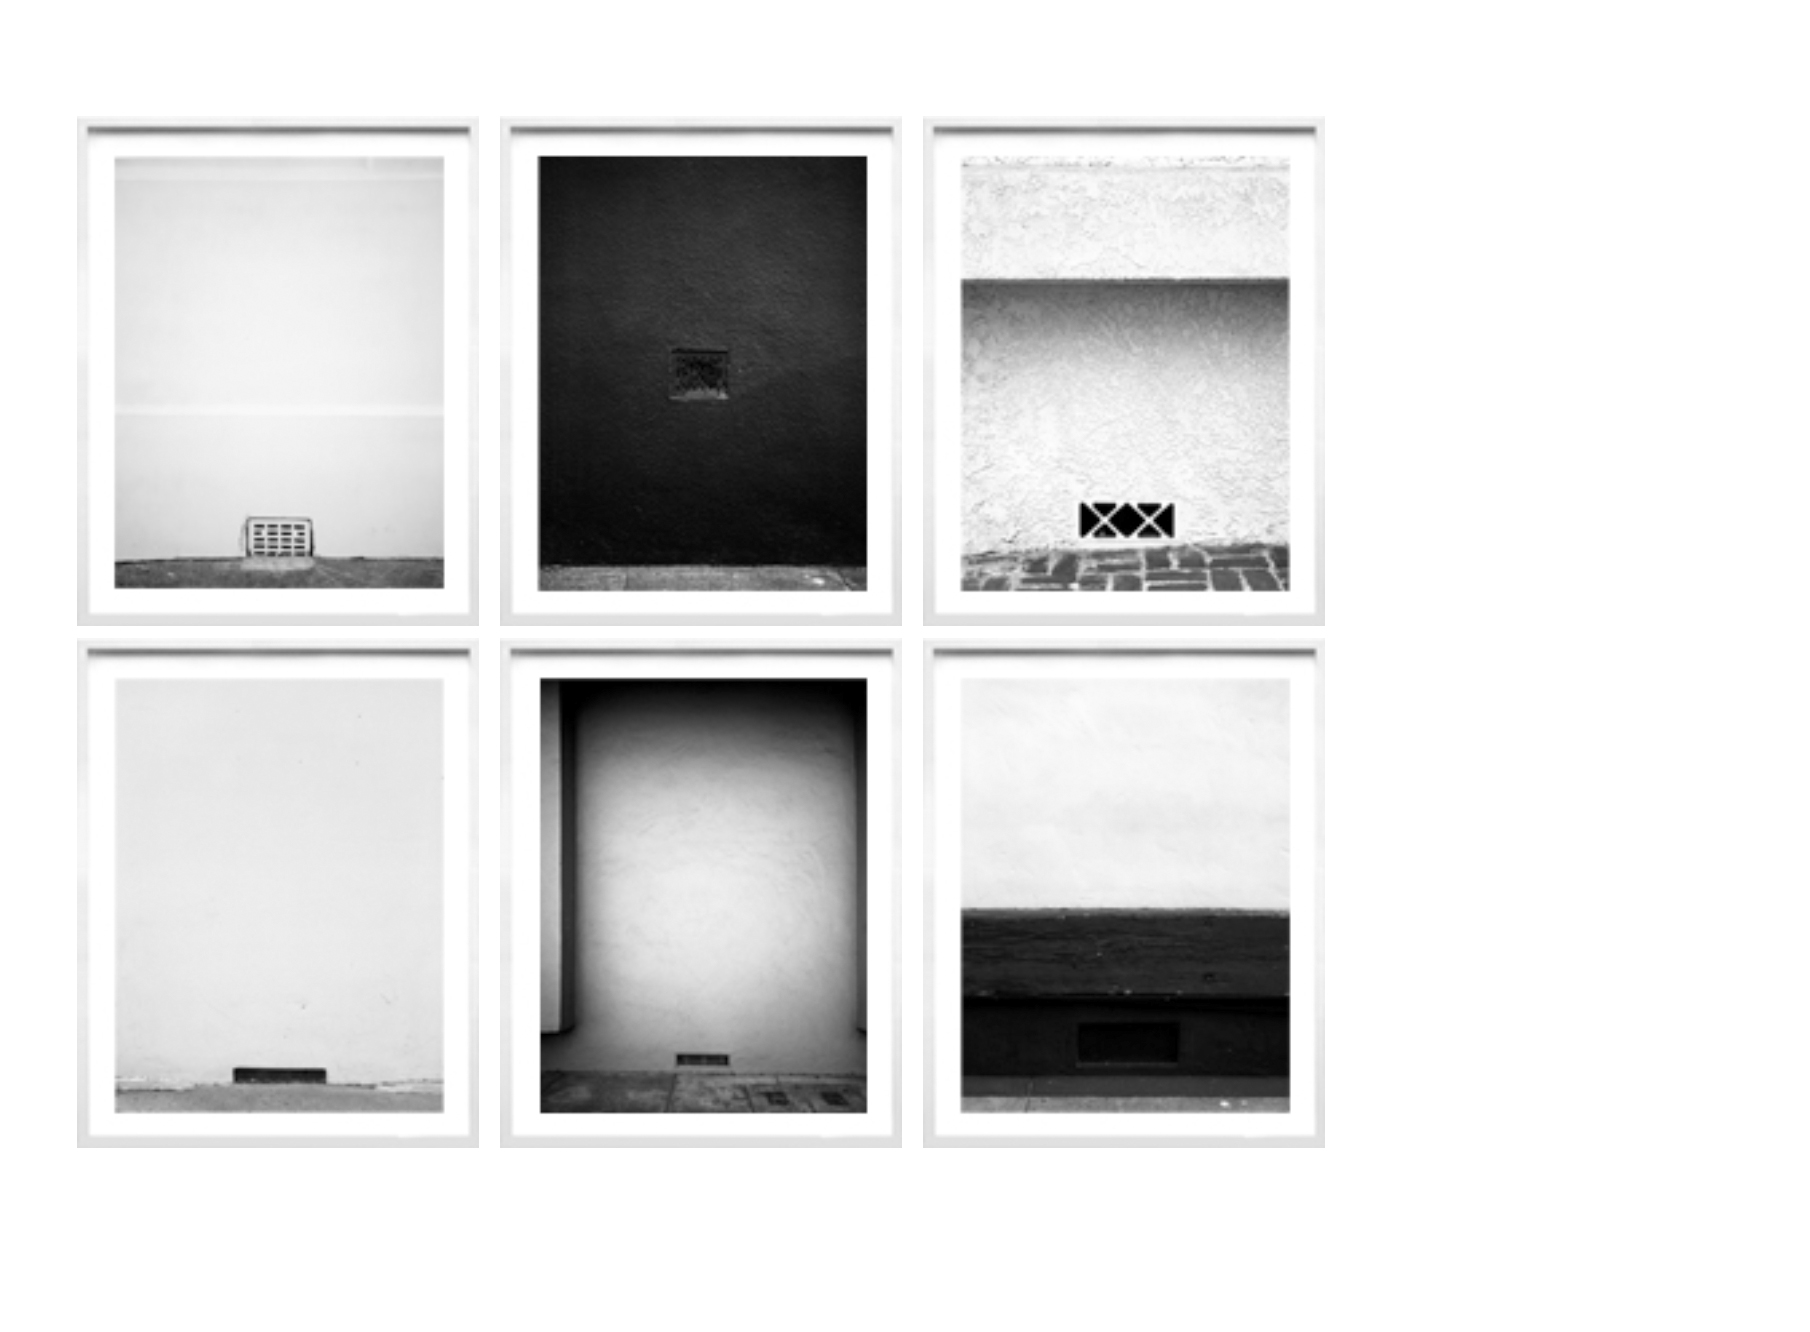 Series of 6, framed, one size, 2005-2008